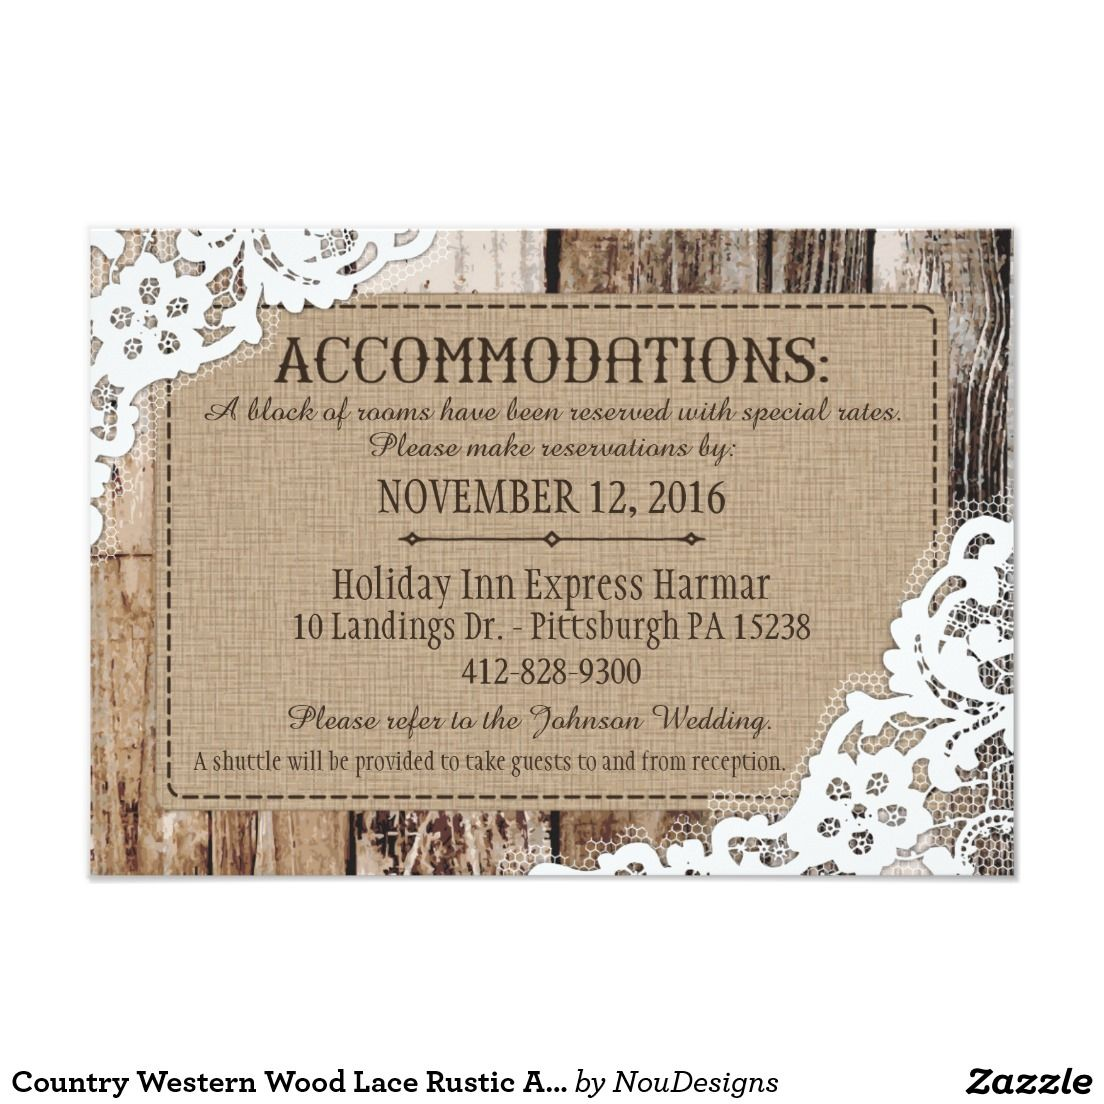 Country Western Wood Lace Rustic Accommodations Card